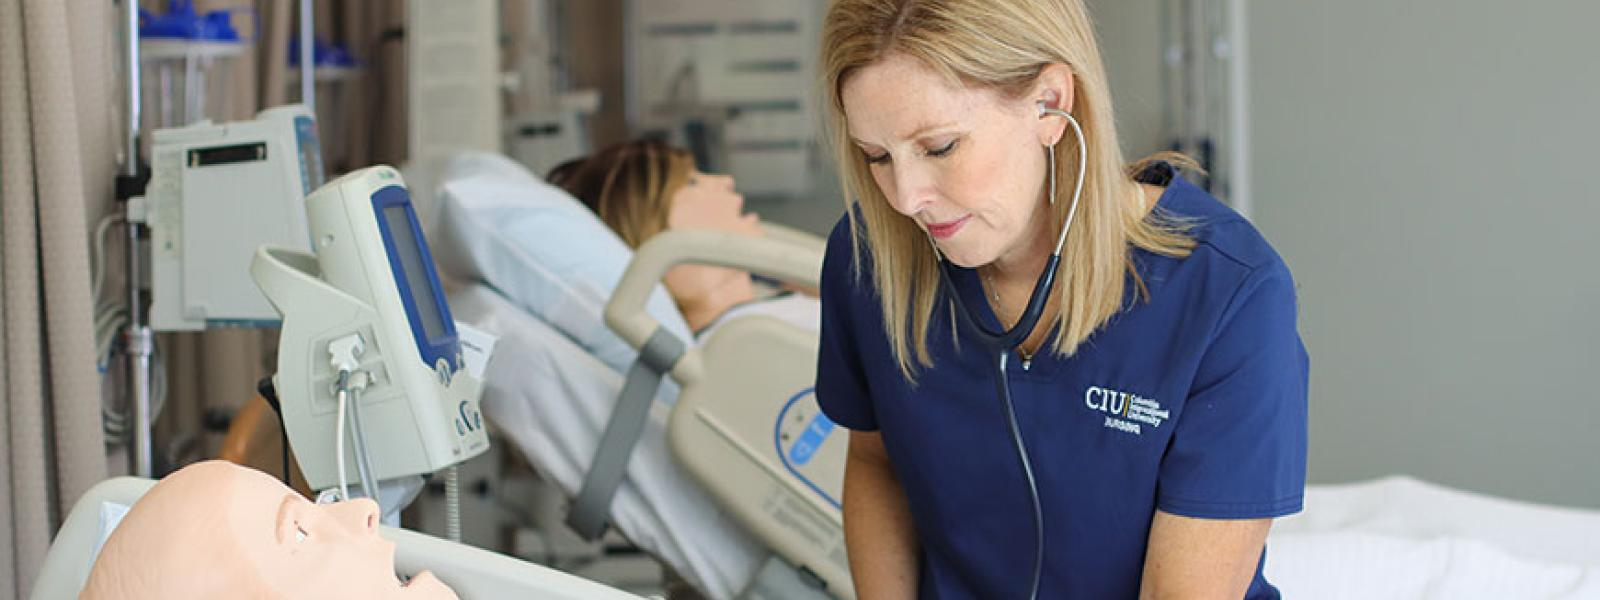 Dr. Jill McElheny with manikins in the CIU Simulation Center as she designs a proposed nursing program.